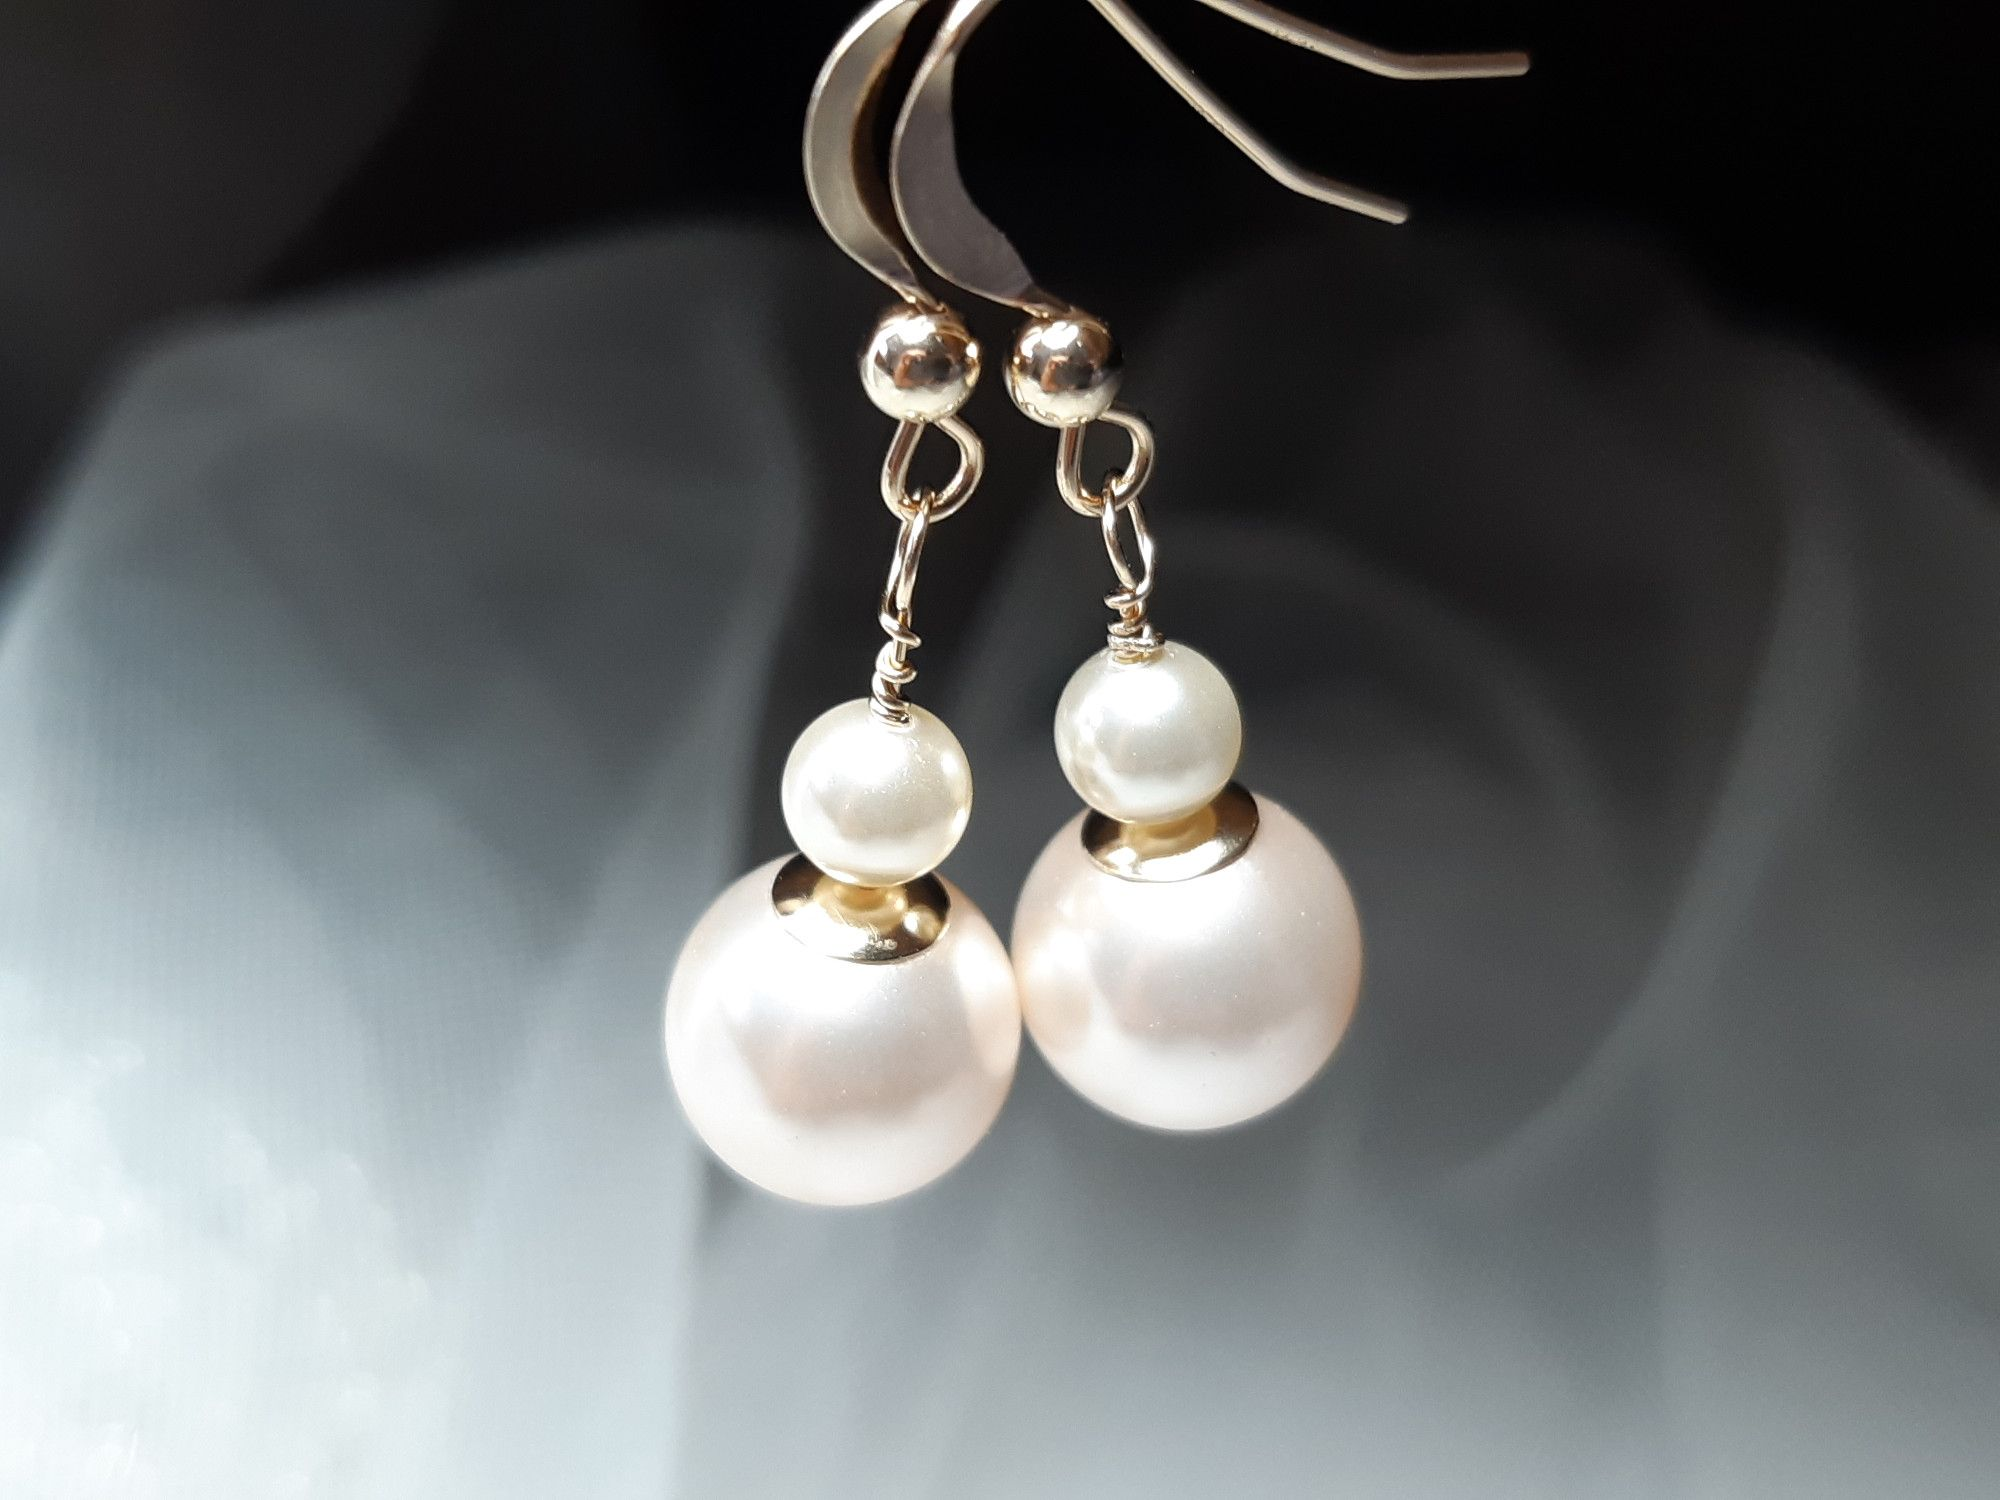 Occasion-bridal-wedding-earrings with 14K gold & pearls-5.jpg